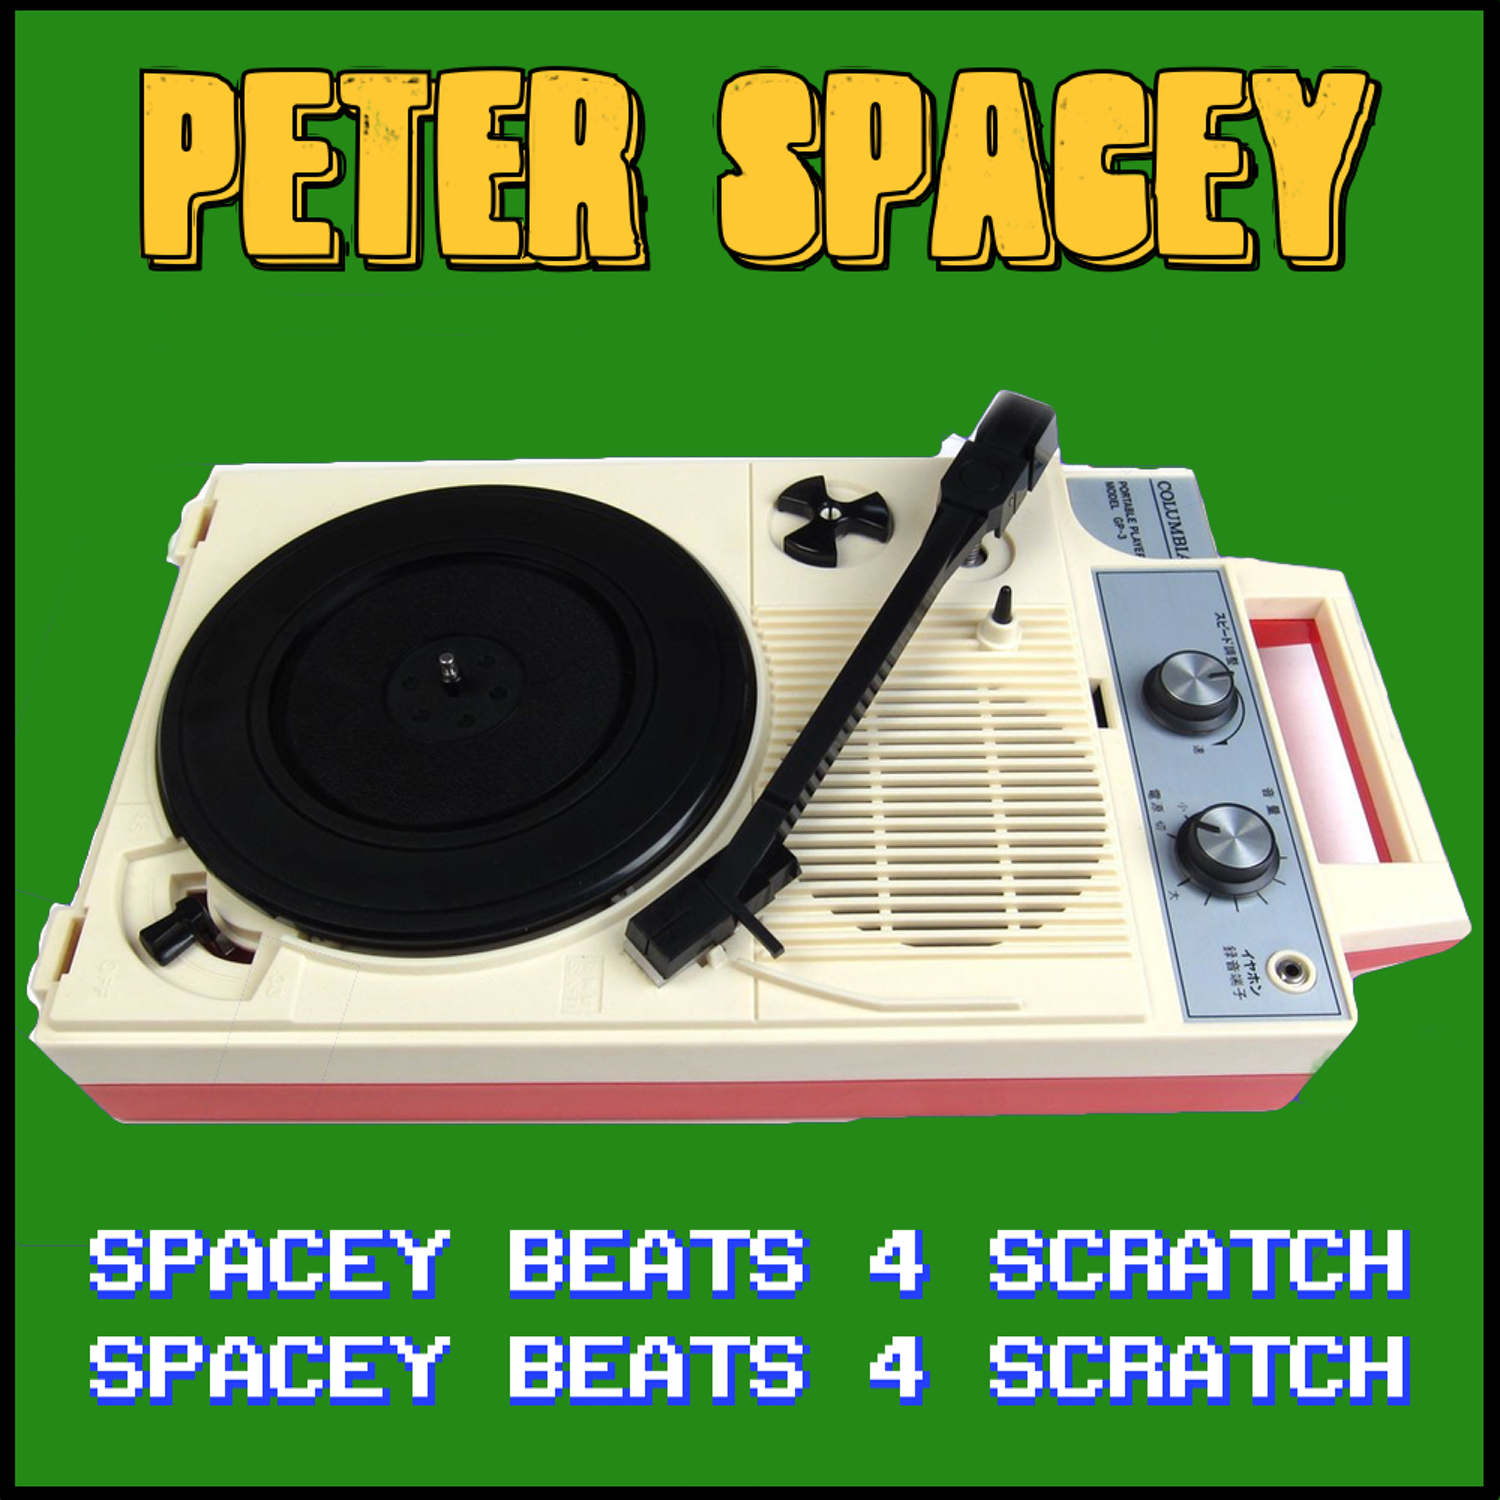 Spacey Beats 4 Scratch - Peter Spacey